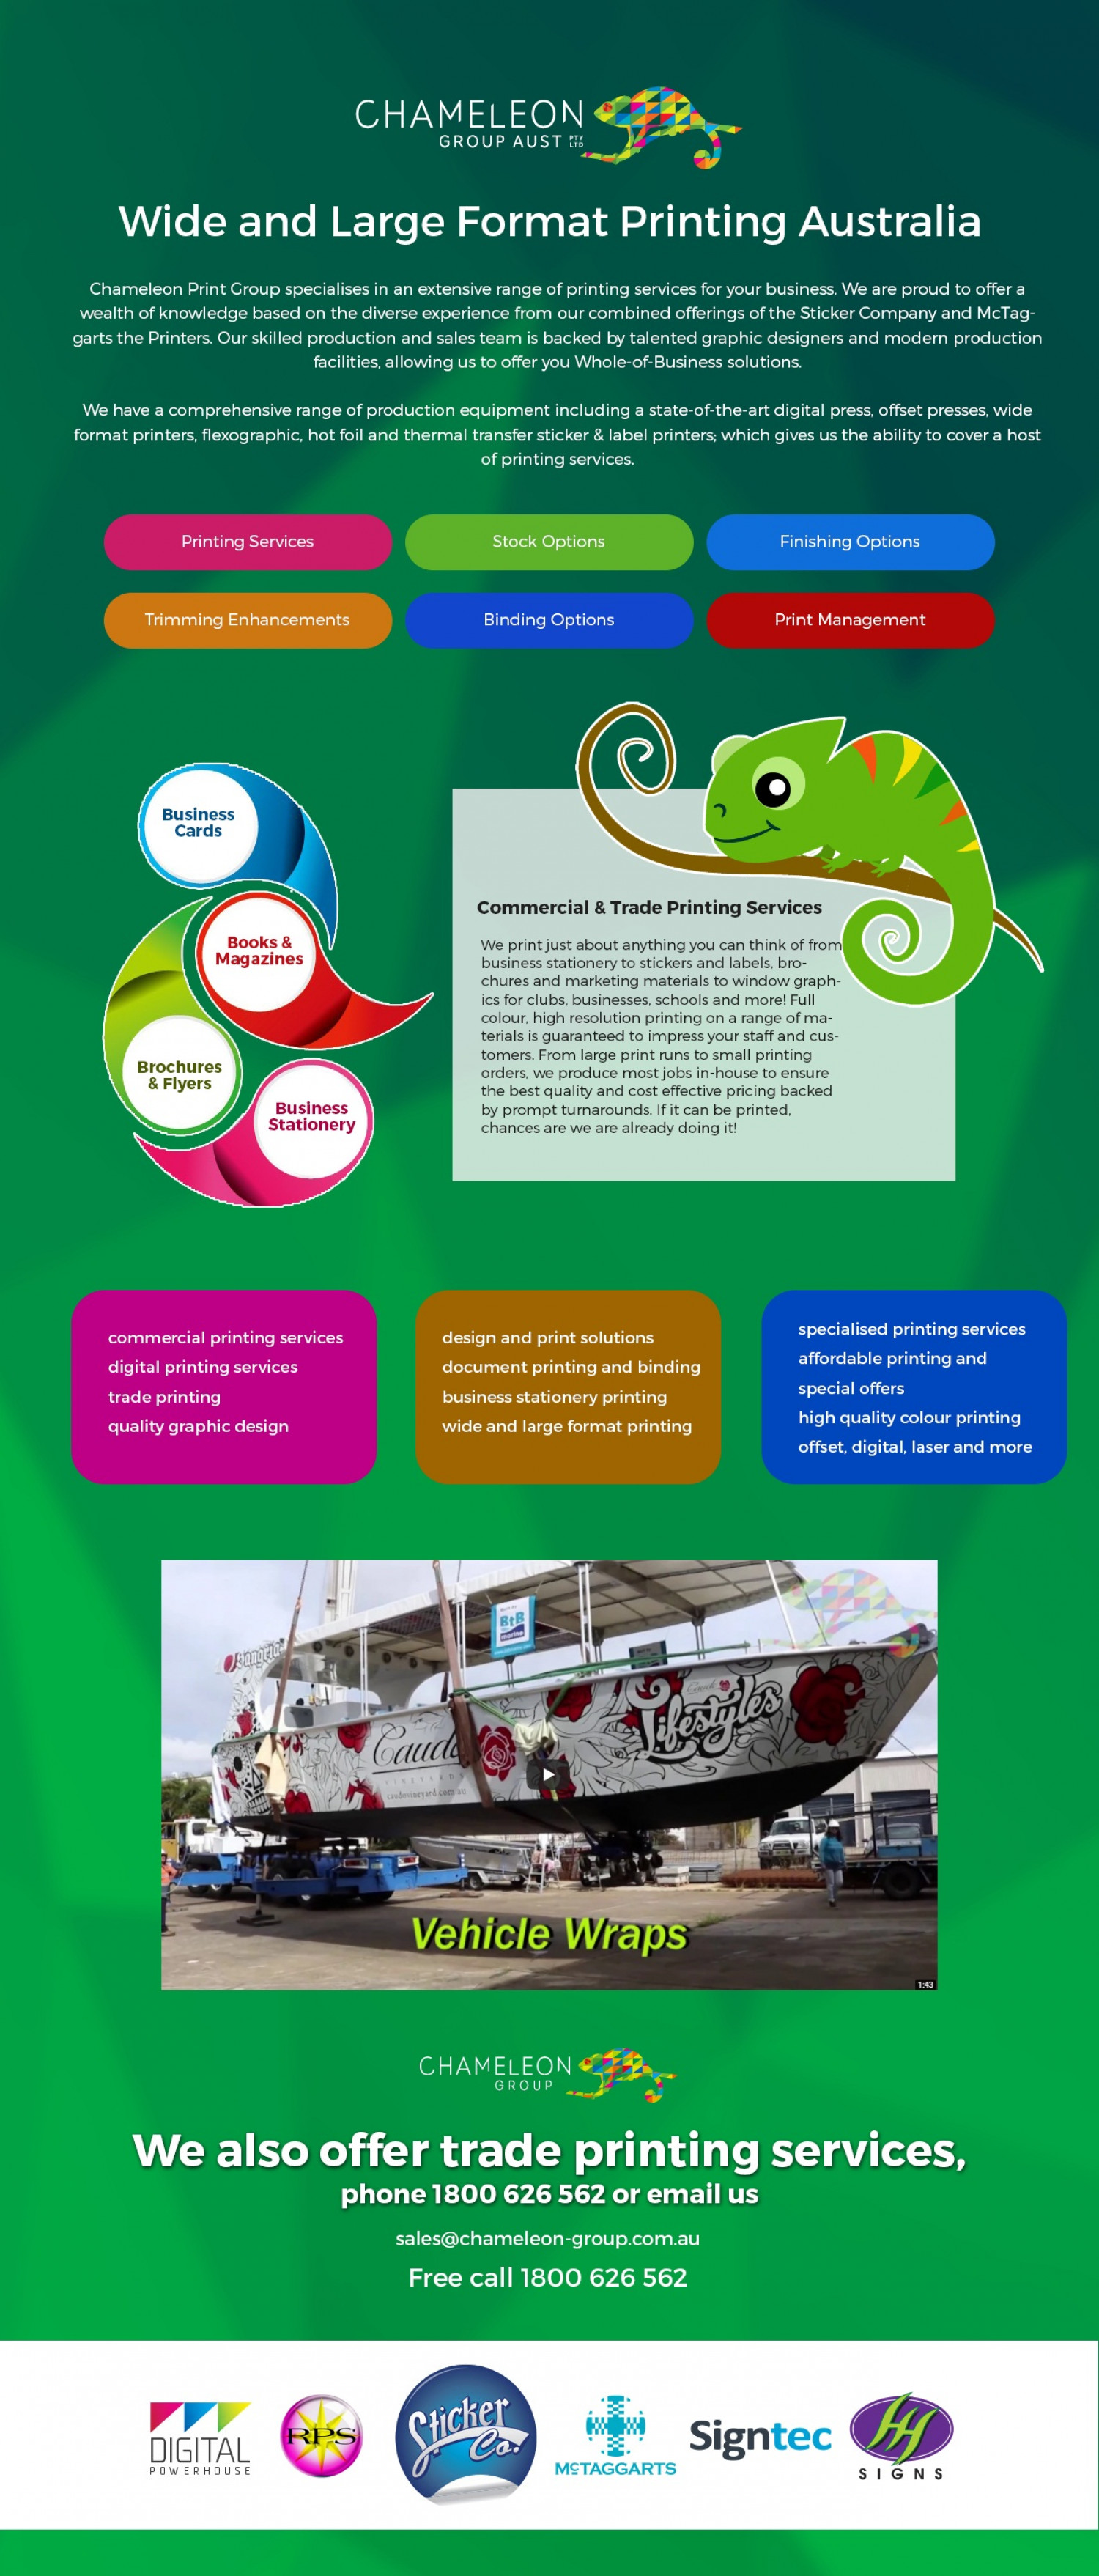 Wide and Large Format Printing Australia Infographic